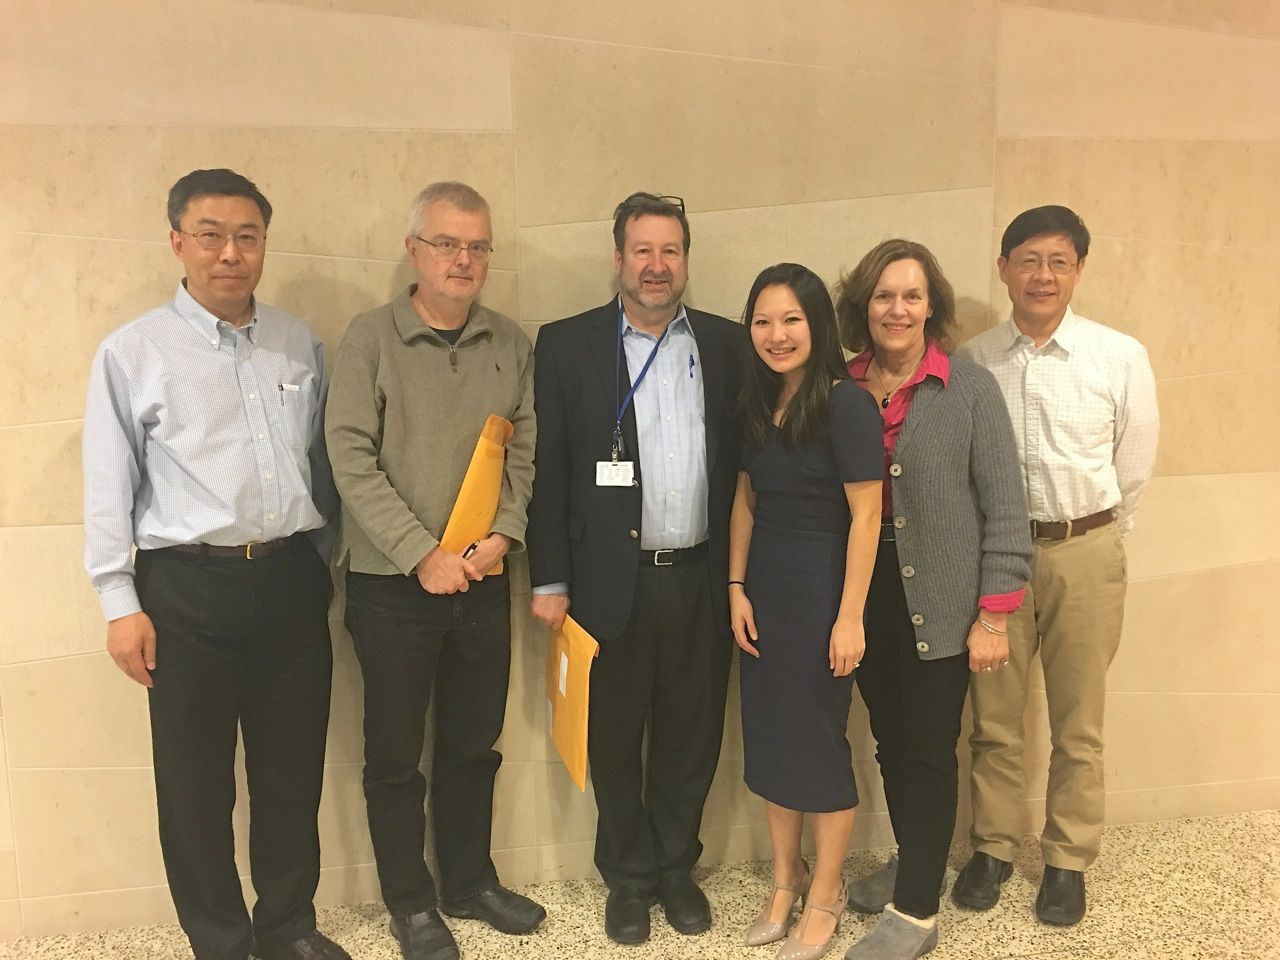 Thesis committee members Drs. Pengbo Zhou, Jochen Buck, David Scheinberg, Danica, Lorraine Gudas, and Yueming Li.